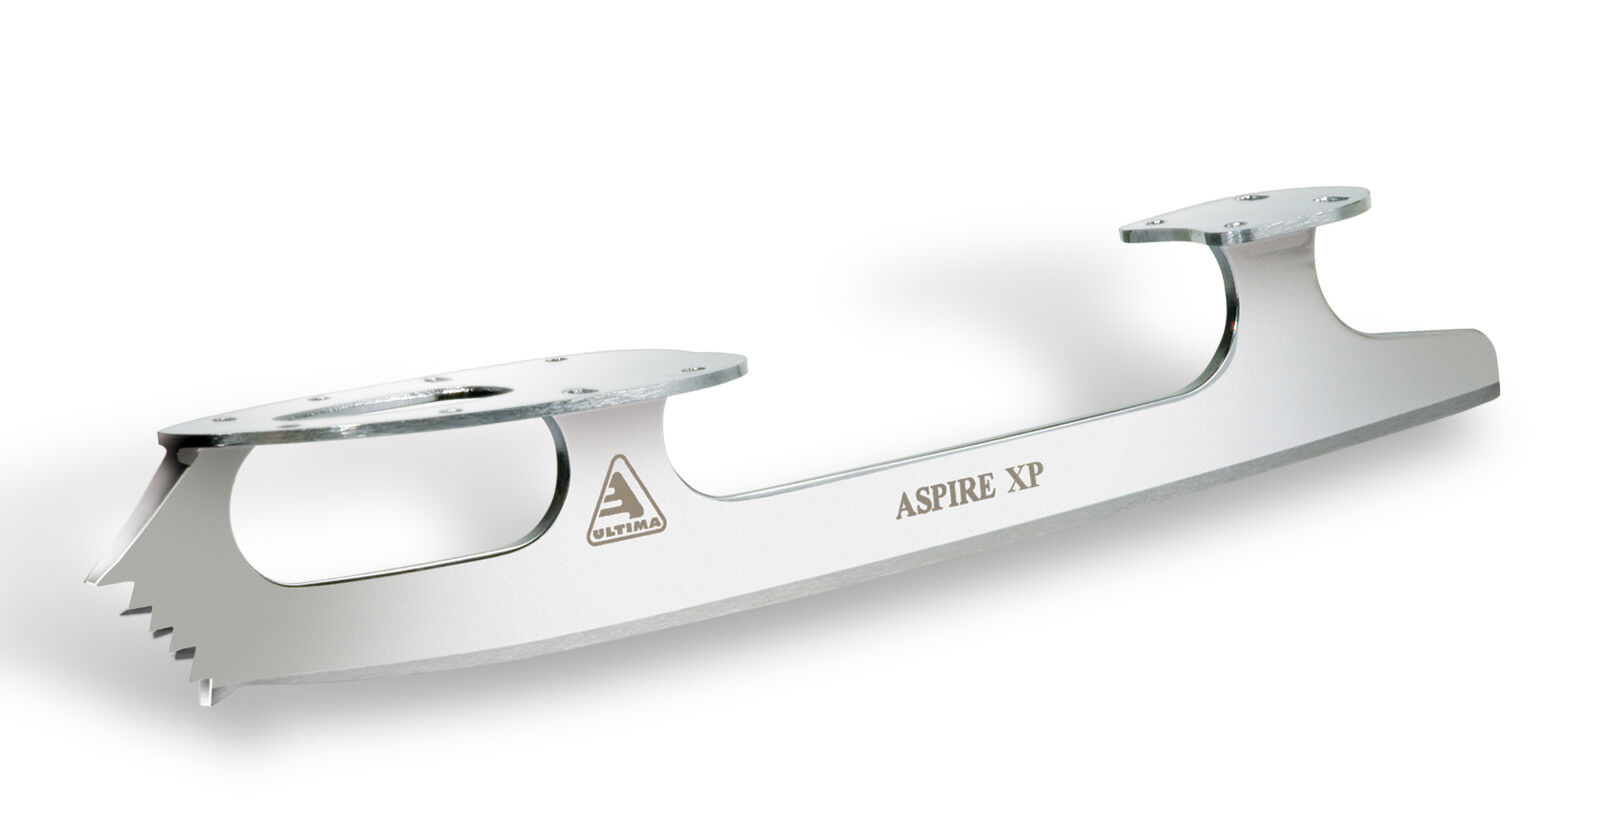 NEW Jackson Ultima Aspire XP UB25- Figure Skating Blades - Email for Beste price